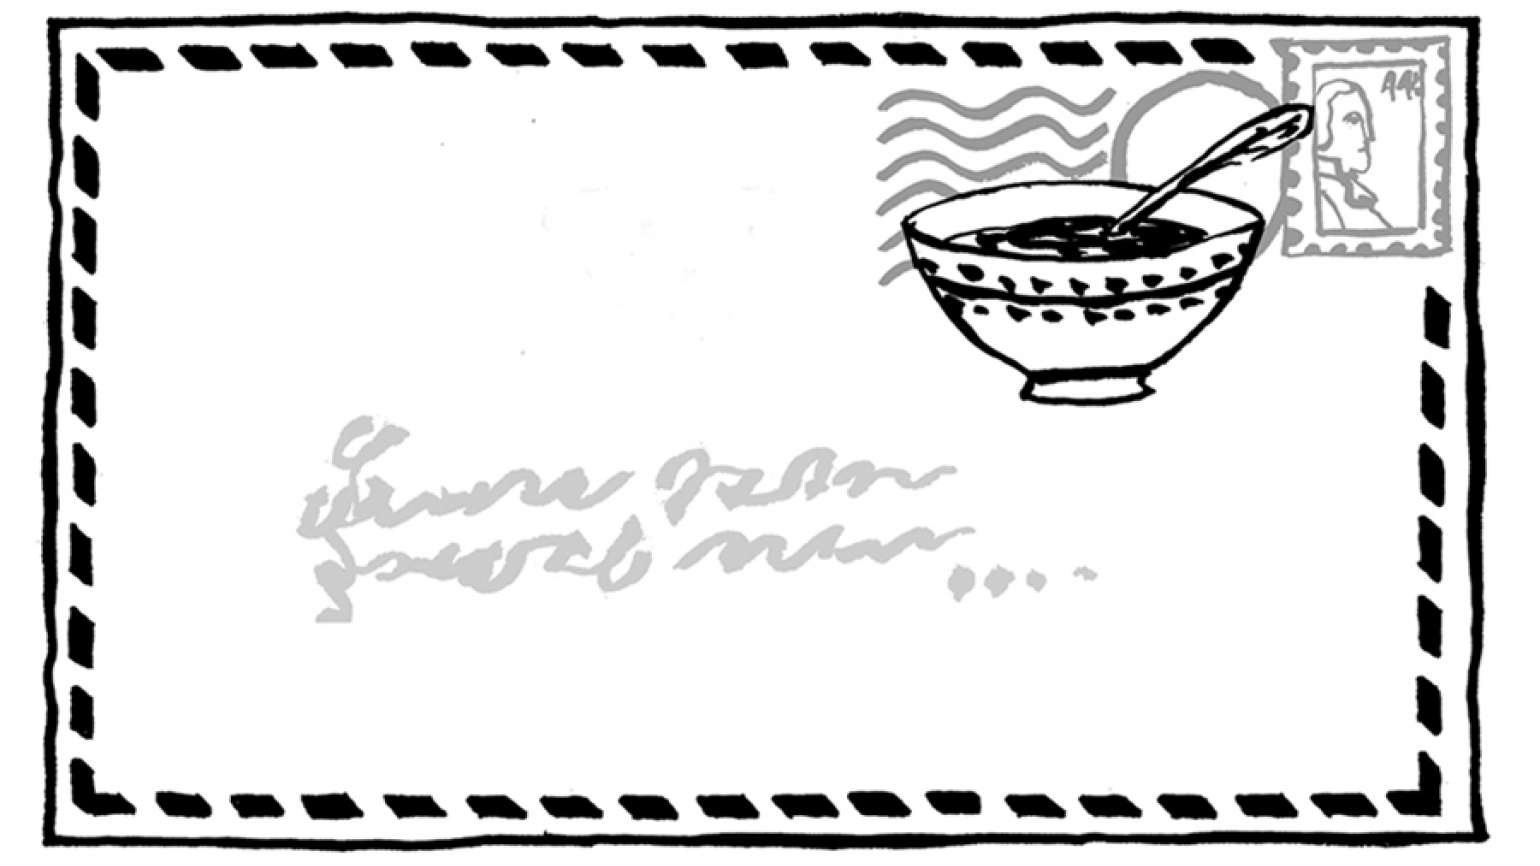 Guideposts: An artist's rendering of a letter with a bowl of soup as a postmark